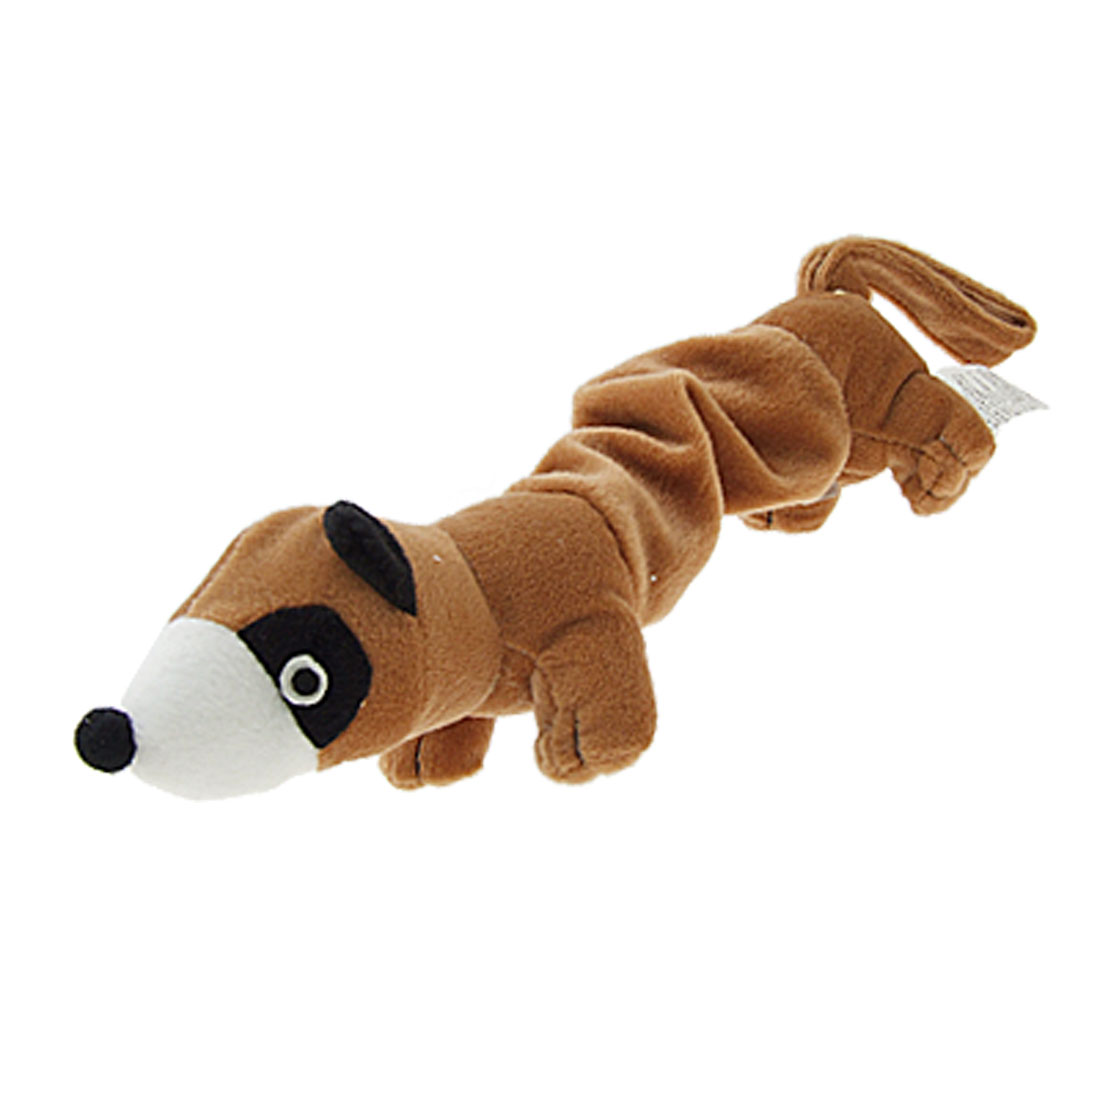 NEW Dog/Puppy Plush Toy Squeaky Otter Dog Toy Brown